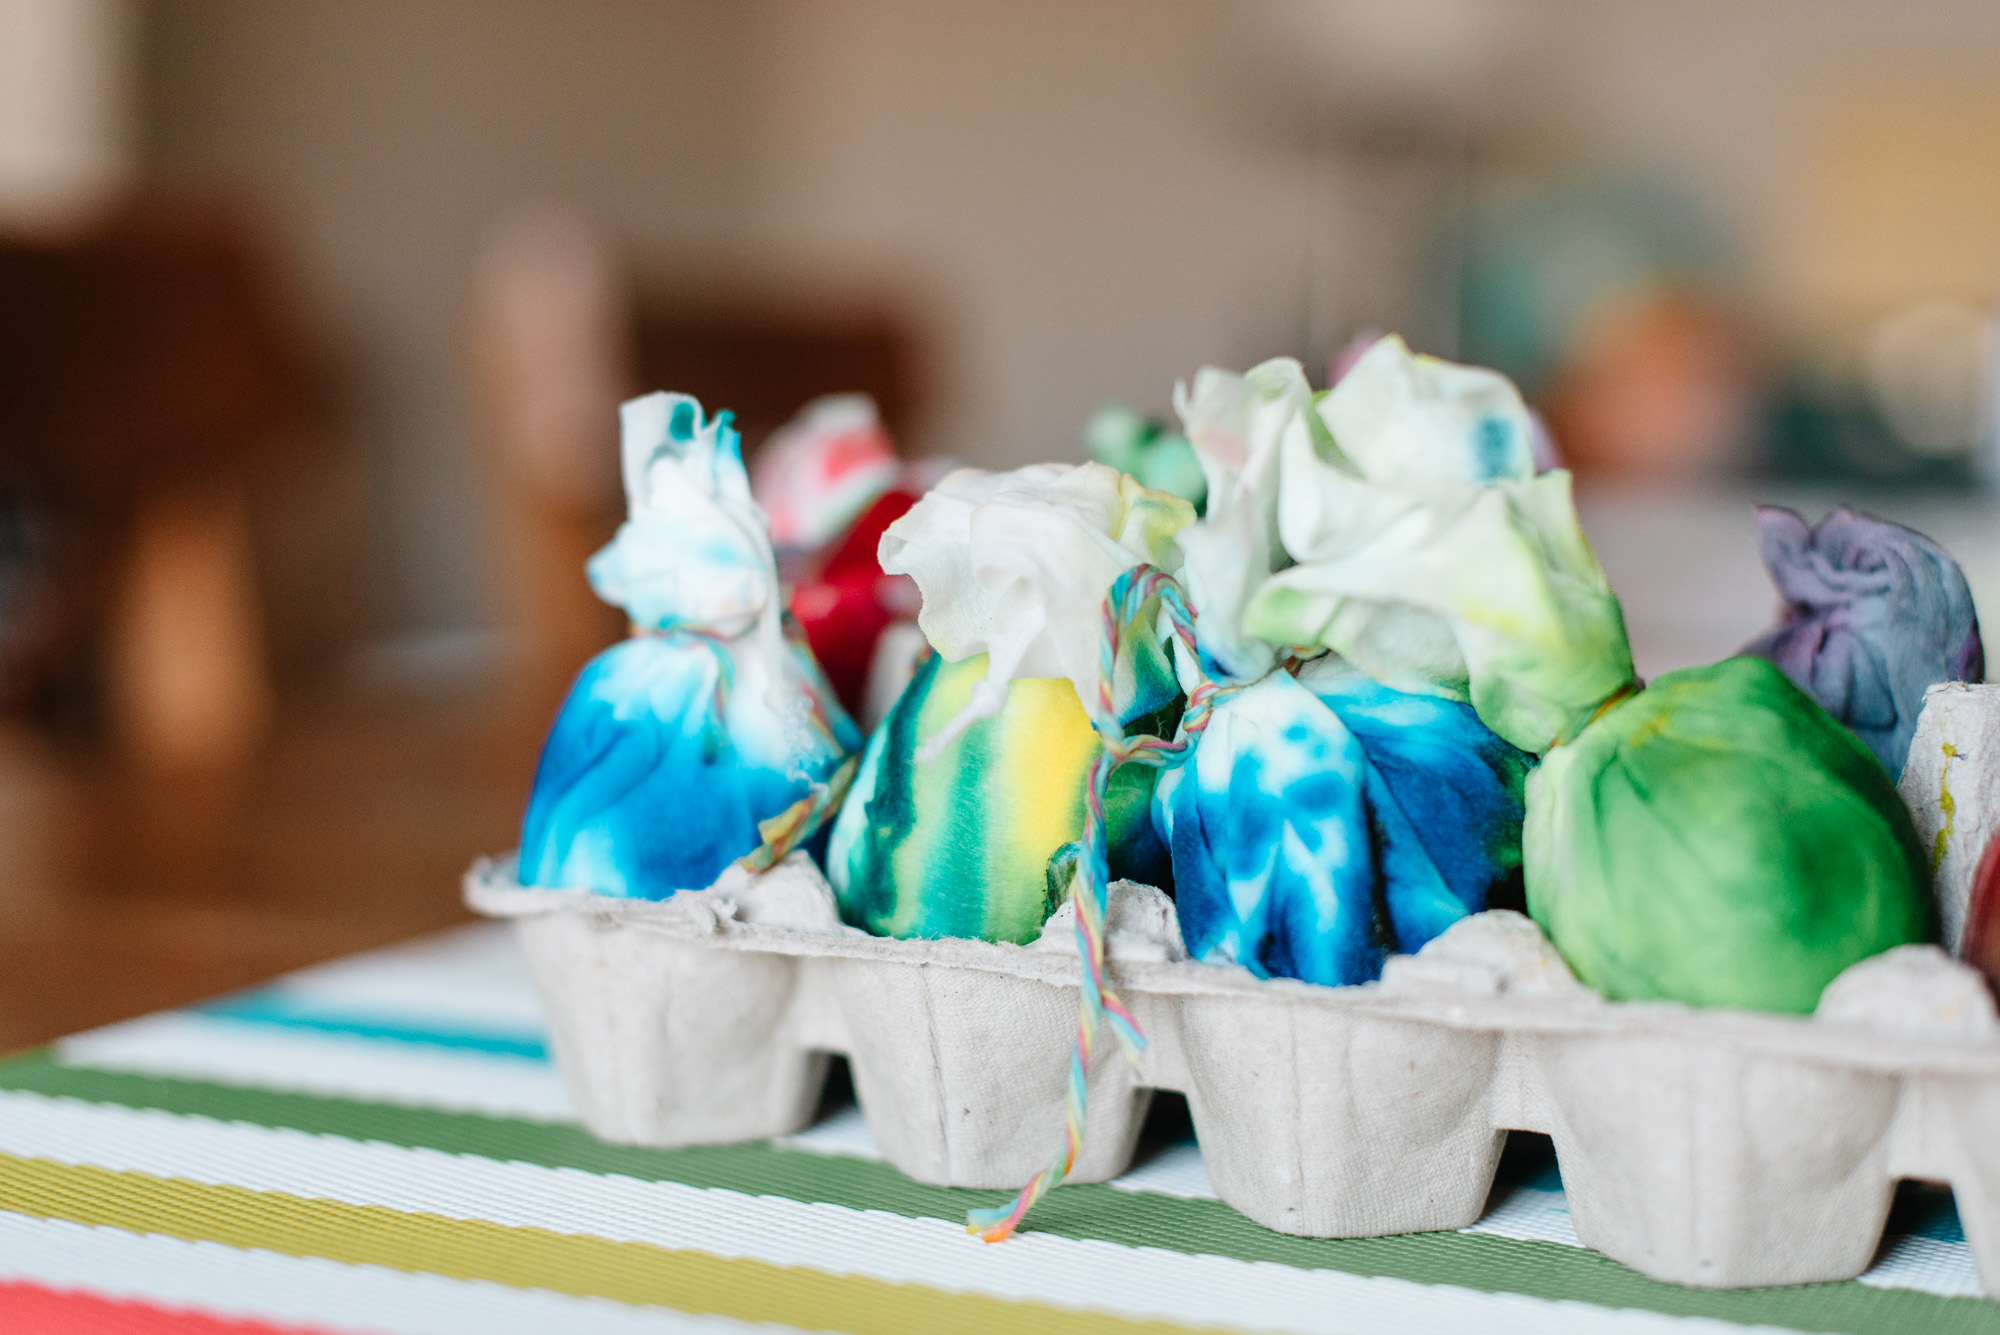 sara-wilde-collective-tie-dye-easter-eggs-food-colouring-19.jpg